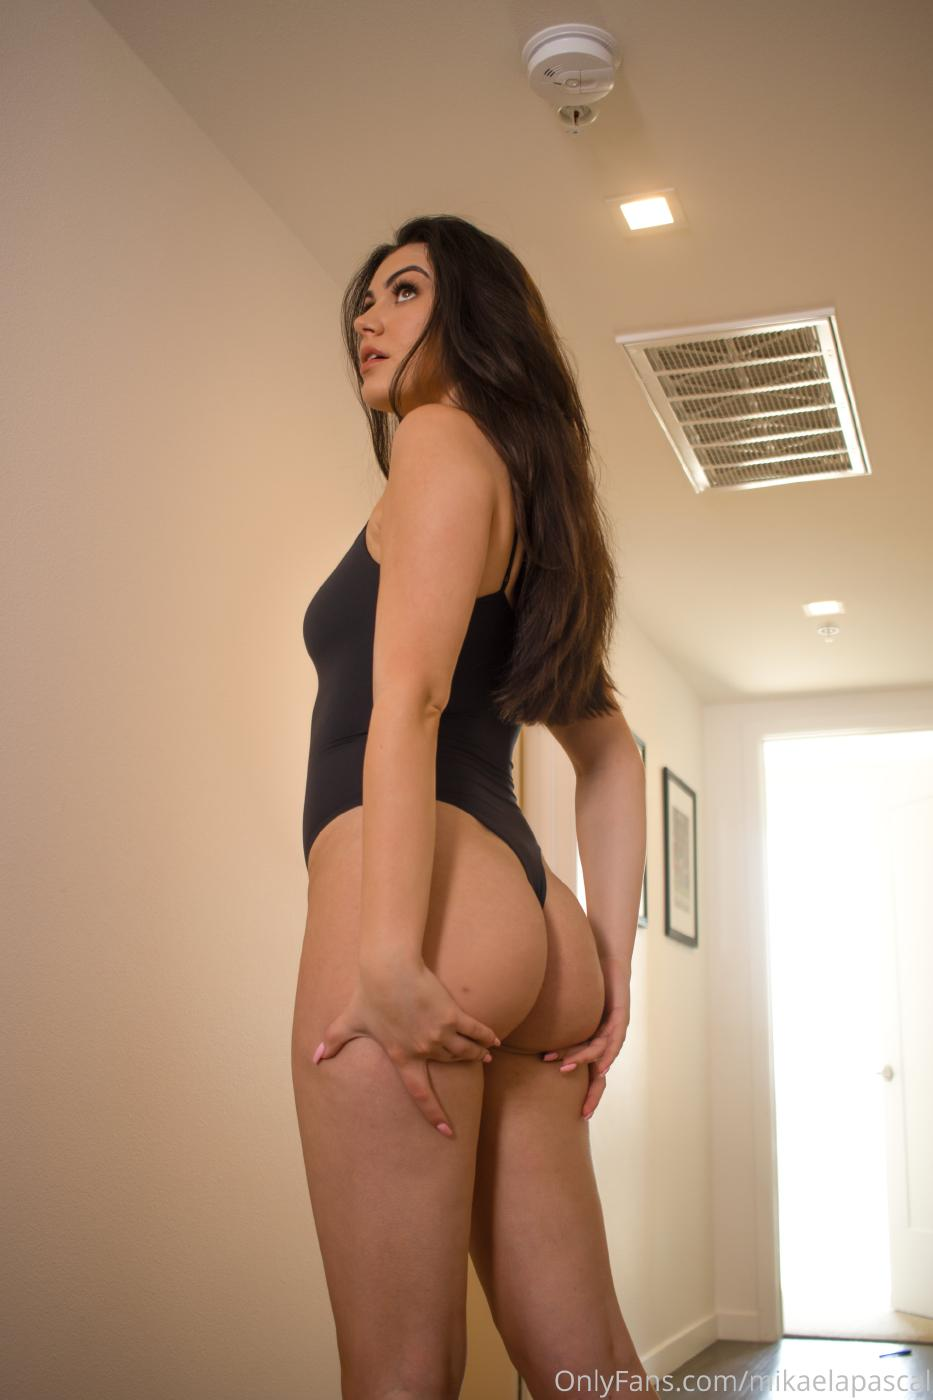 Mikaela Pascal Topless Bodysuit Onlyfans Set Leaked Lxfqwh